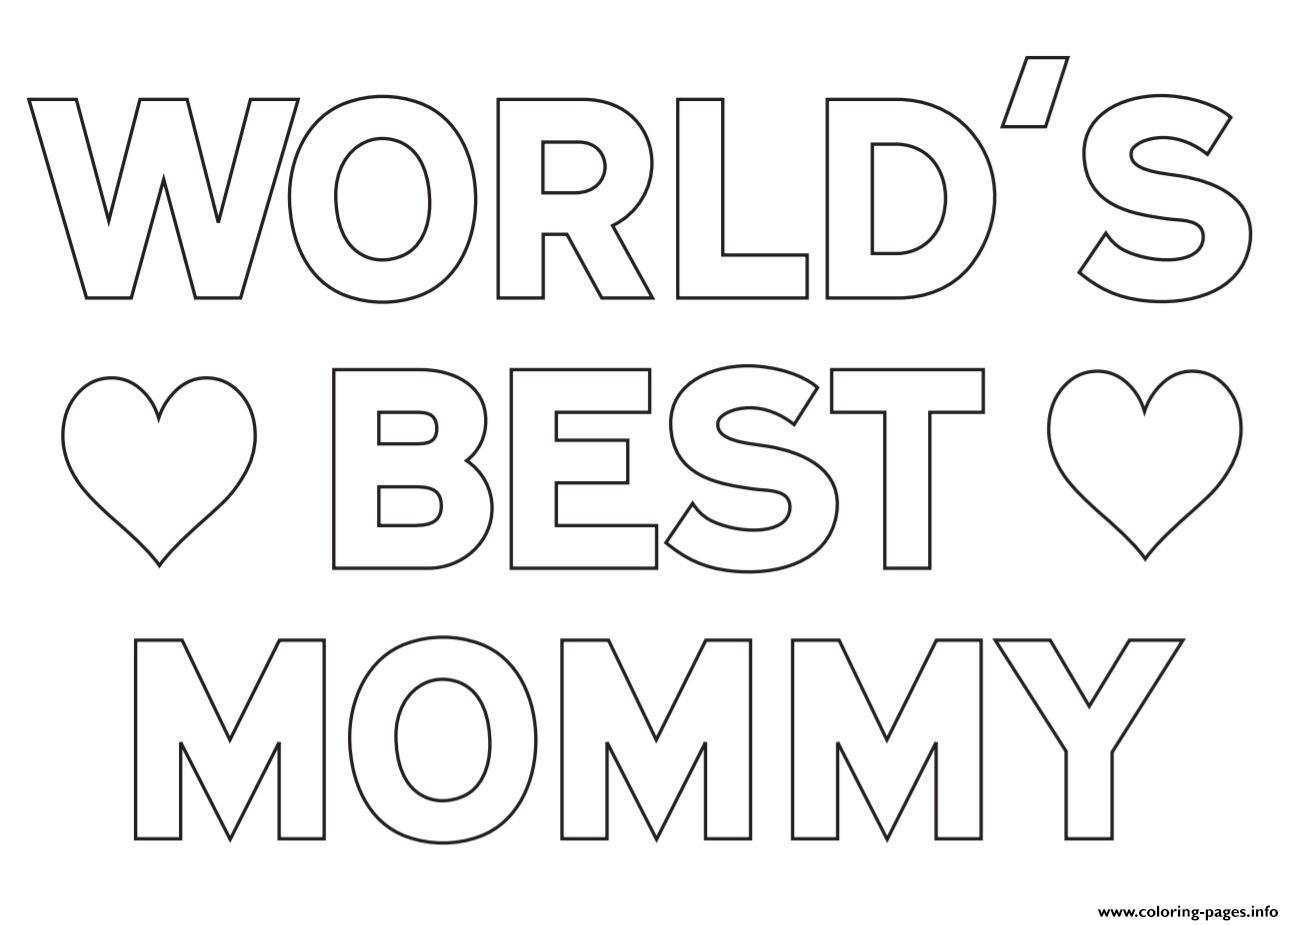 mom coloring page - worlds best mommy mom coloring pages printable